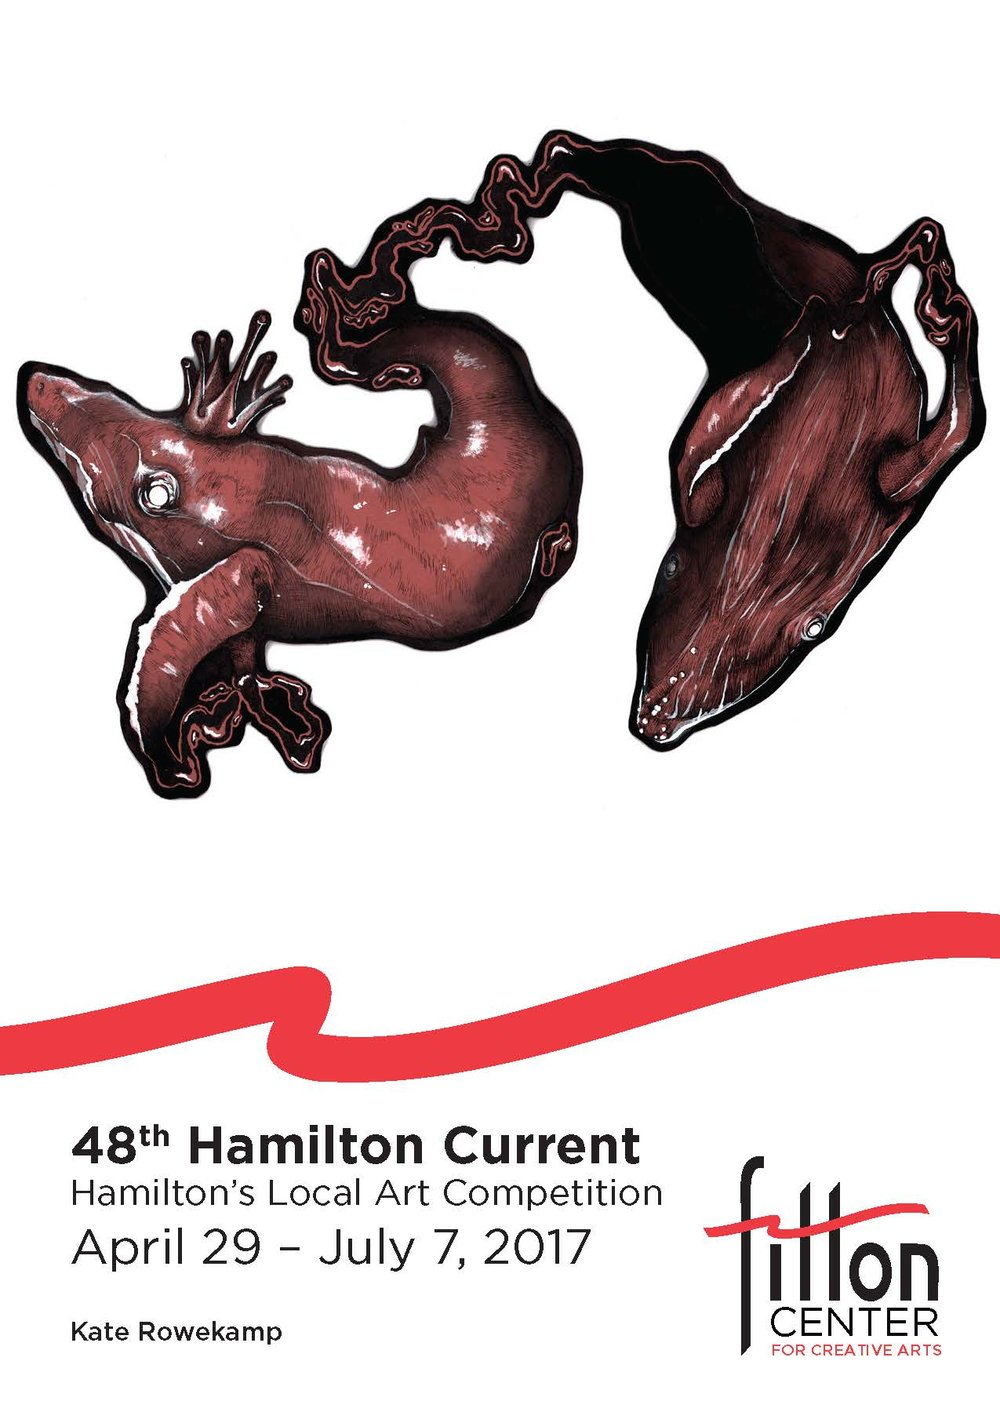 Hamilton Current  April 29 - July 7, 2017   Fitton Center for Creative Arts   101 S. Monument Ave.   Hamilton, OH 45011